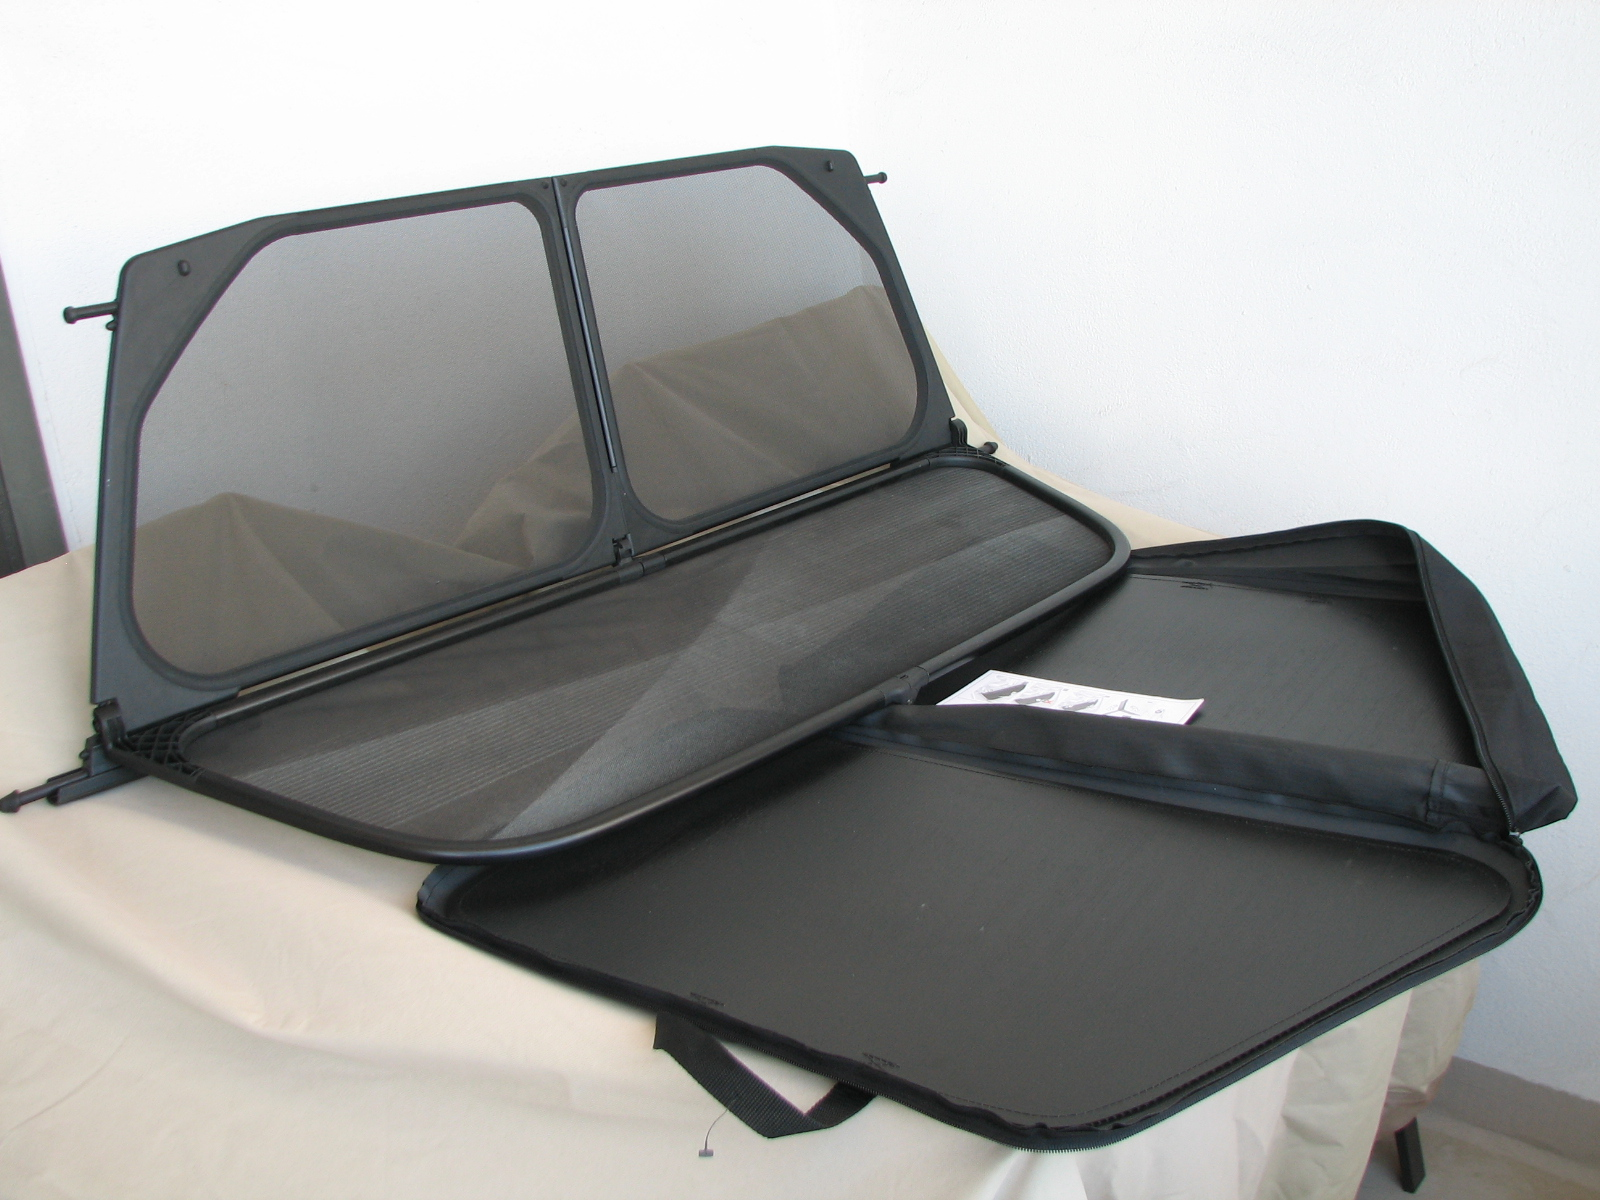 Oem Bmw 1 Series Convertible Wind Deflector Case